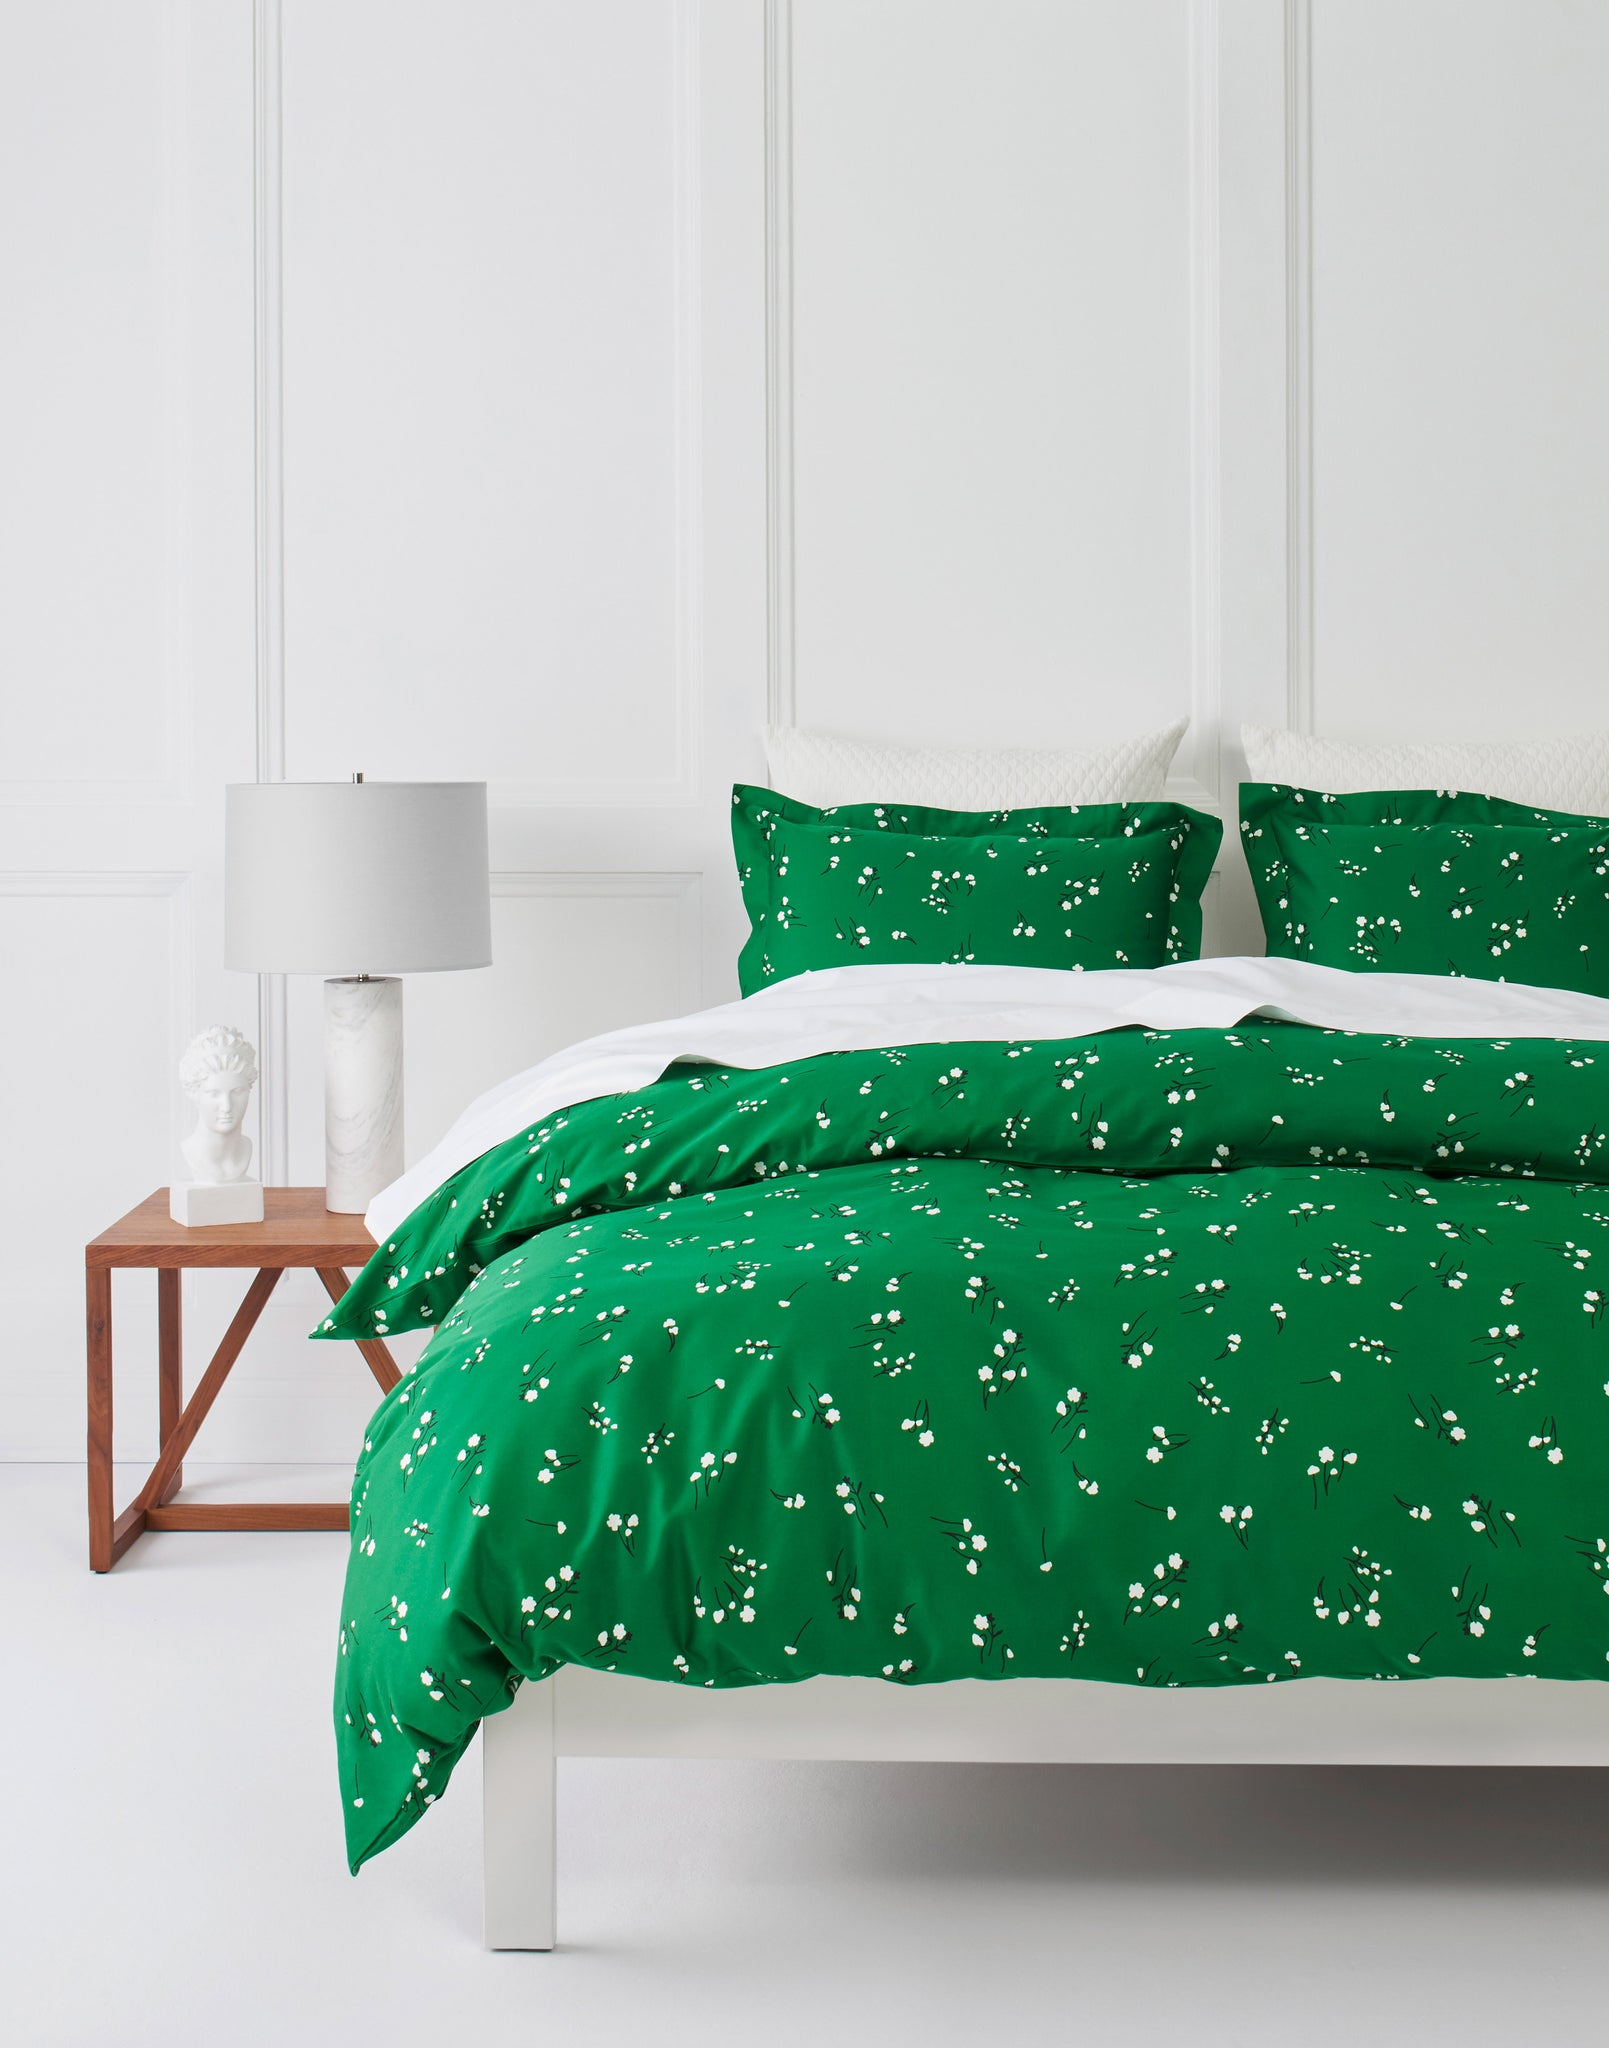 Wildflower Emerald bedding | Charlotte Janvier | Hygge & West